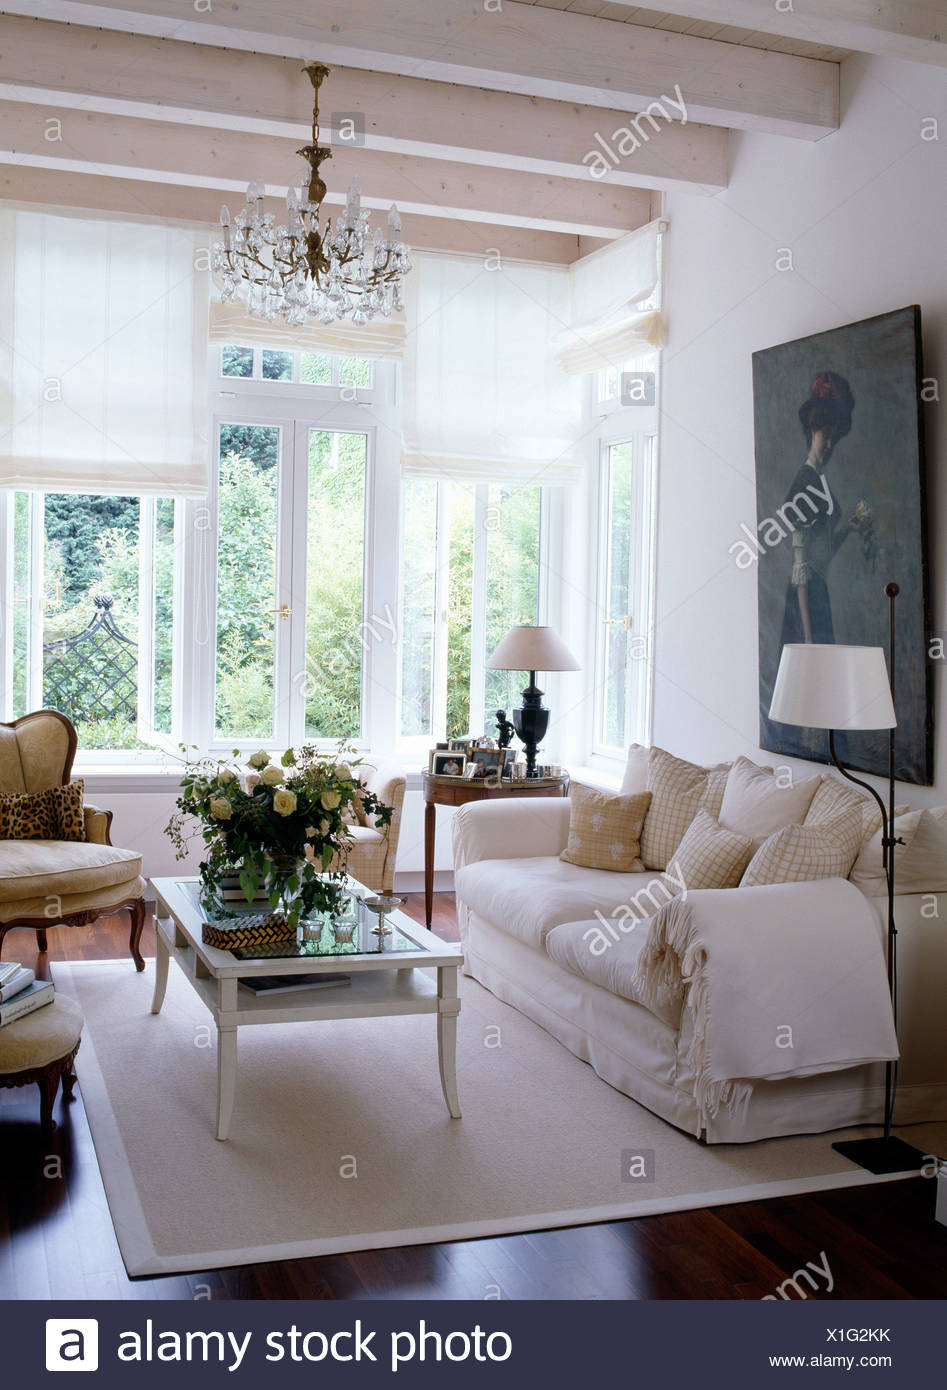 Coffee table on white rug in front of white sofa in country ...